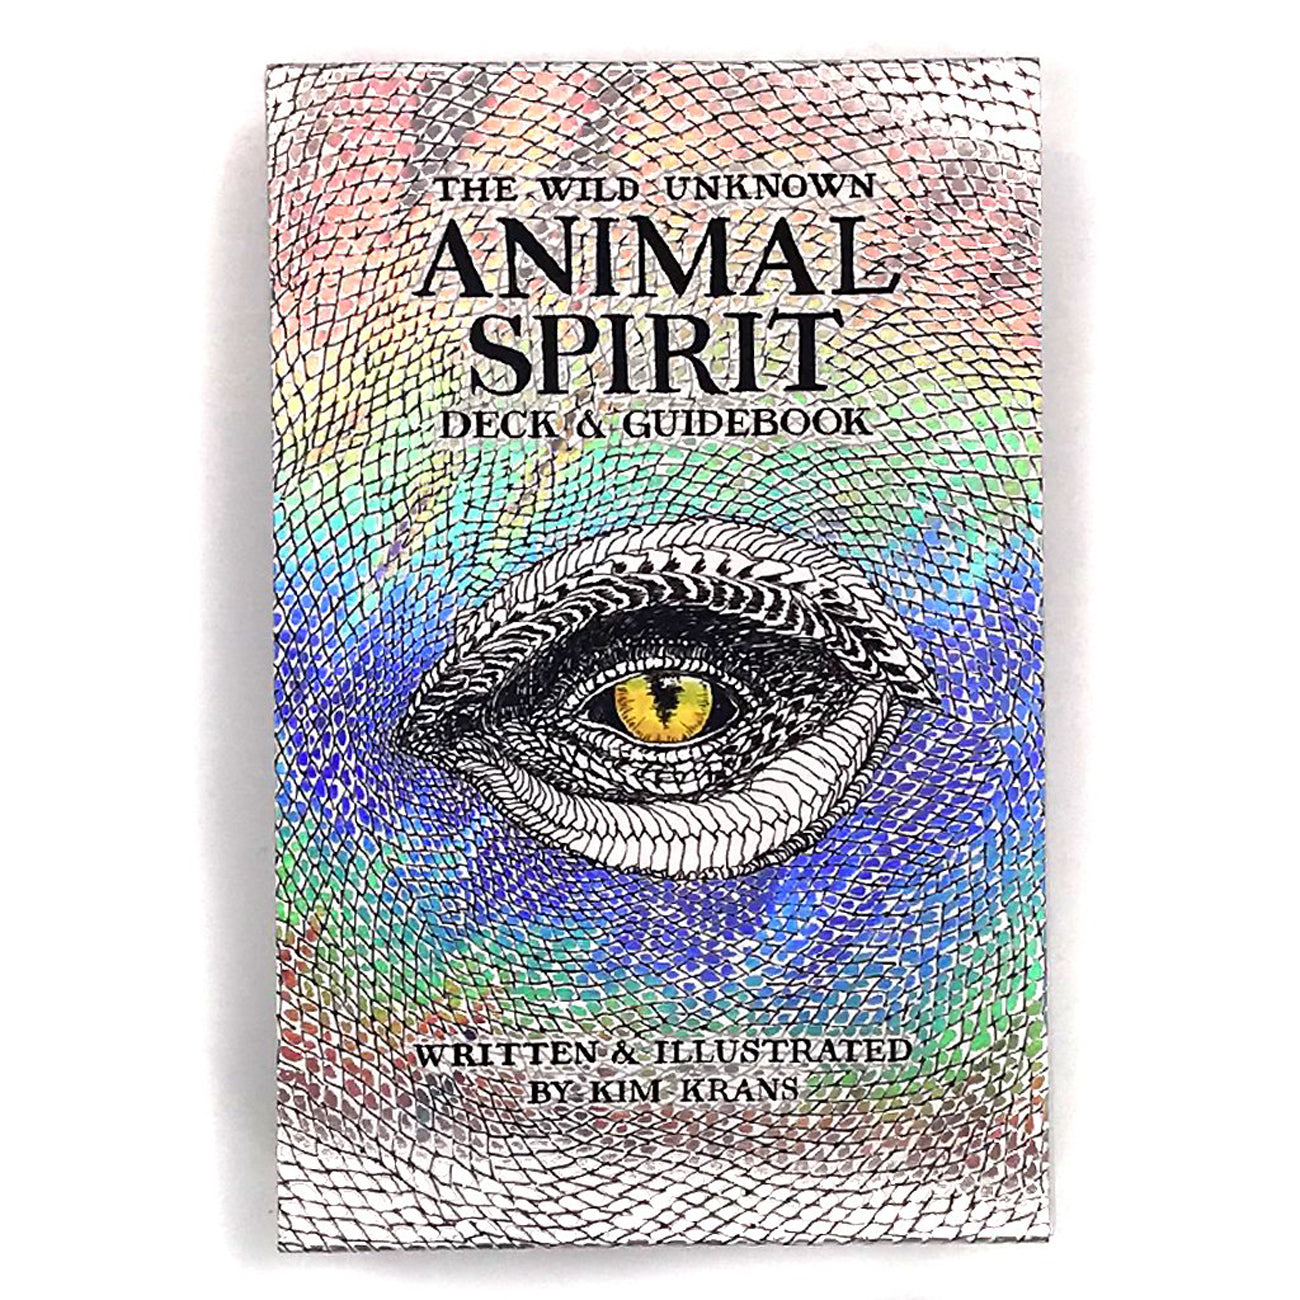 The Wild Unknown Animal Spirit Box Set